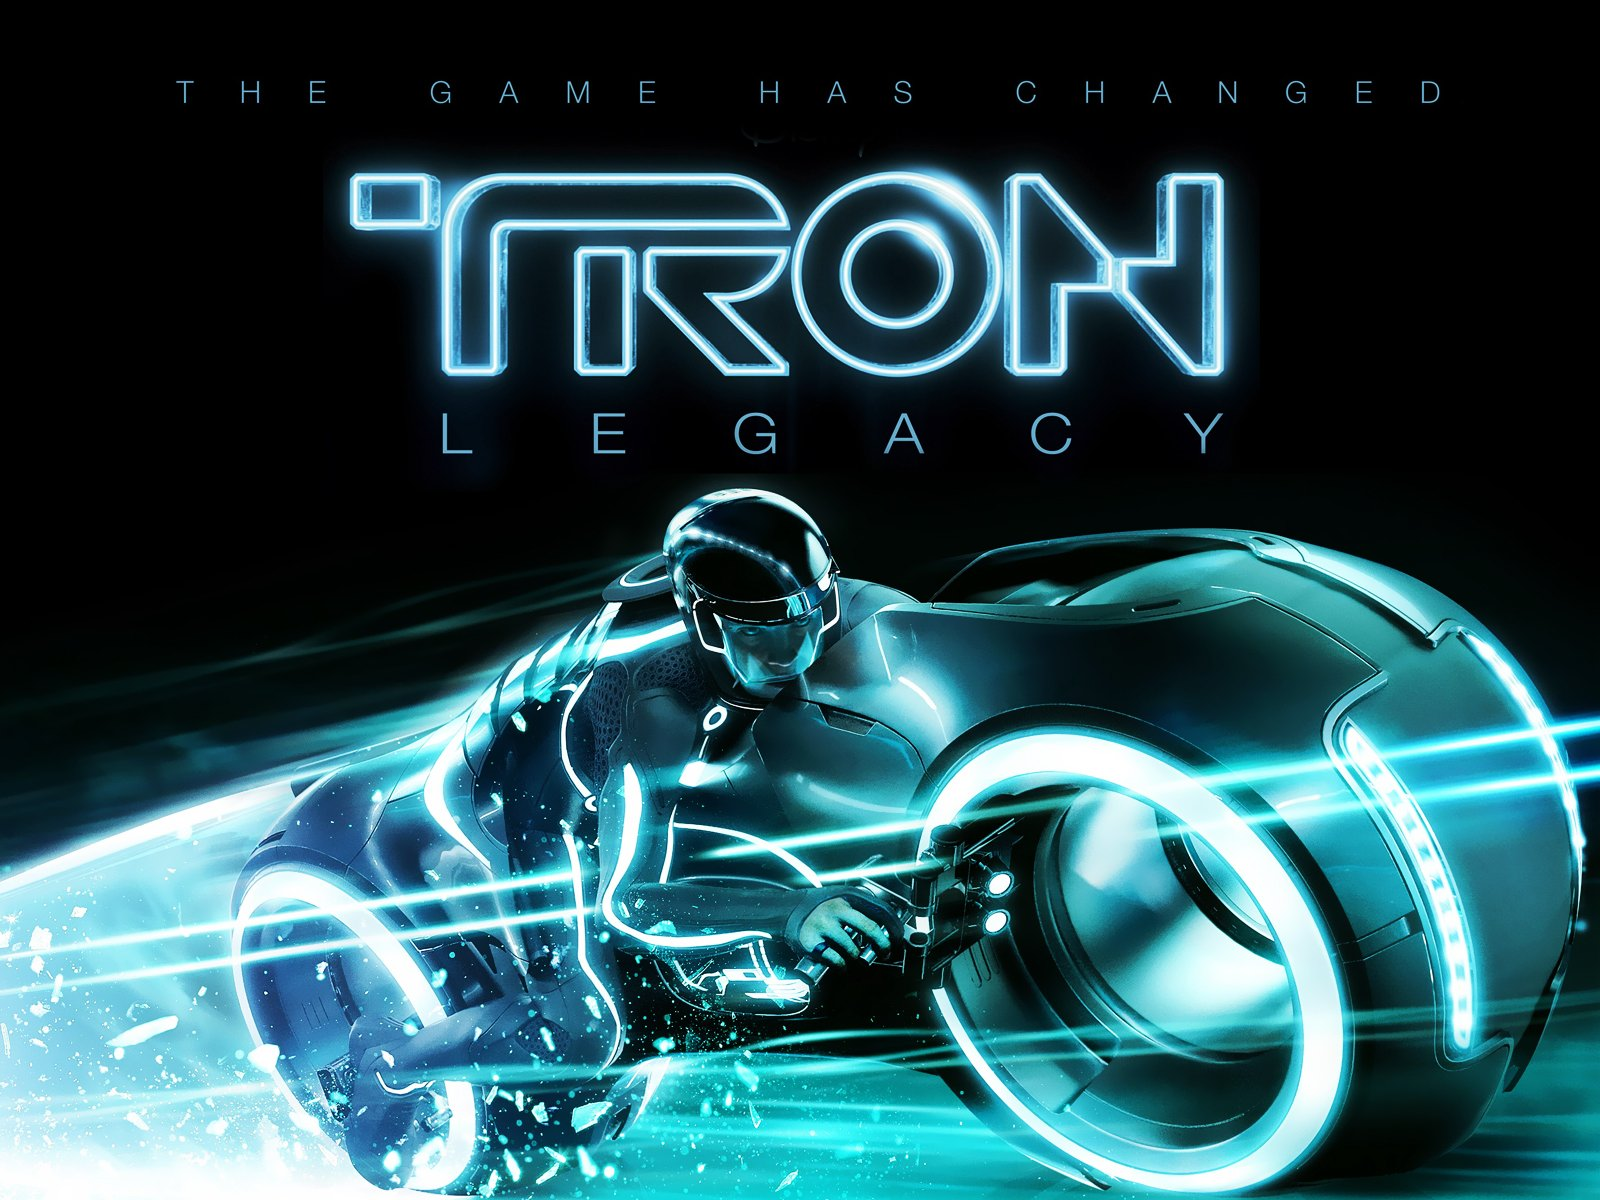 http://3.bp.blogspot.com/-eUvZz2EFOWE/Tlm_UodL9II/AAAAAAAABDE/7dAnPiVuJSw/s1600/Tron-Legacy-Wallpaper-Movie-Wallpaper-9.jpg